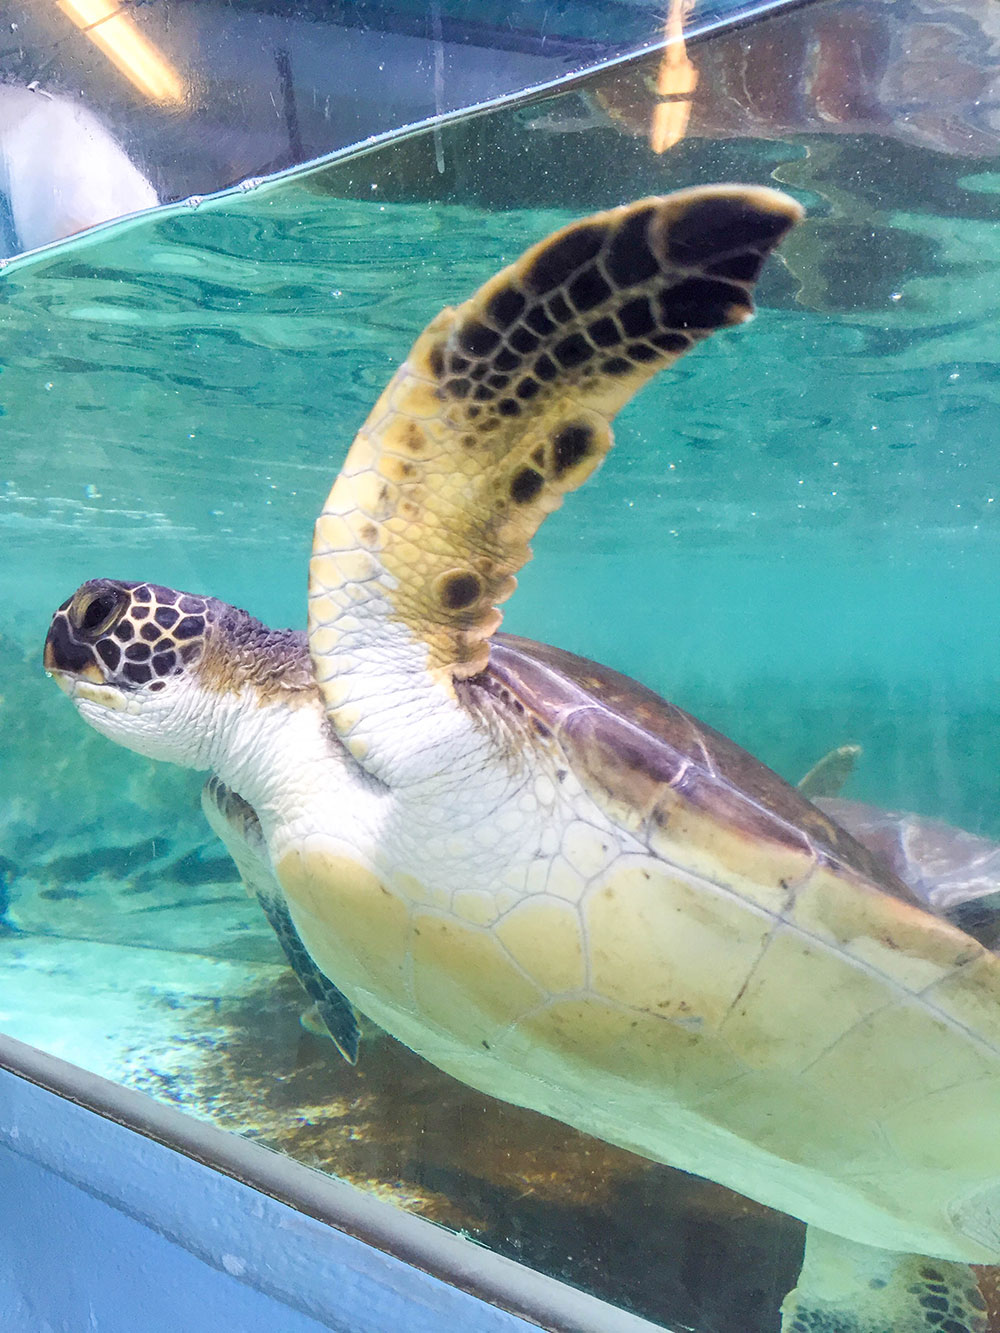 vandi-fair-dallas-fashion-blog-lauren-vandiver-southern-texas-travel-blogger-visit-long-beach-california-aquarium-of-the-pacific-behind-the-scenes-sea-turtle